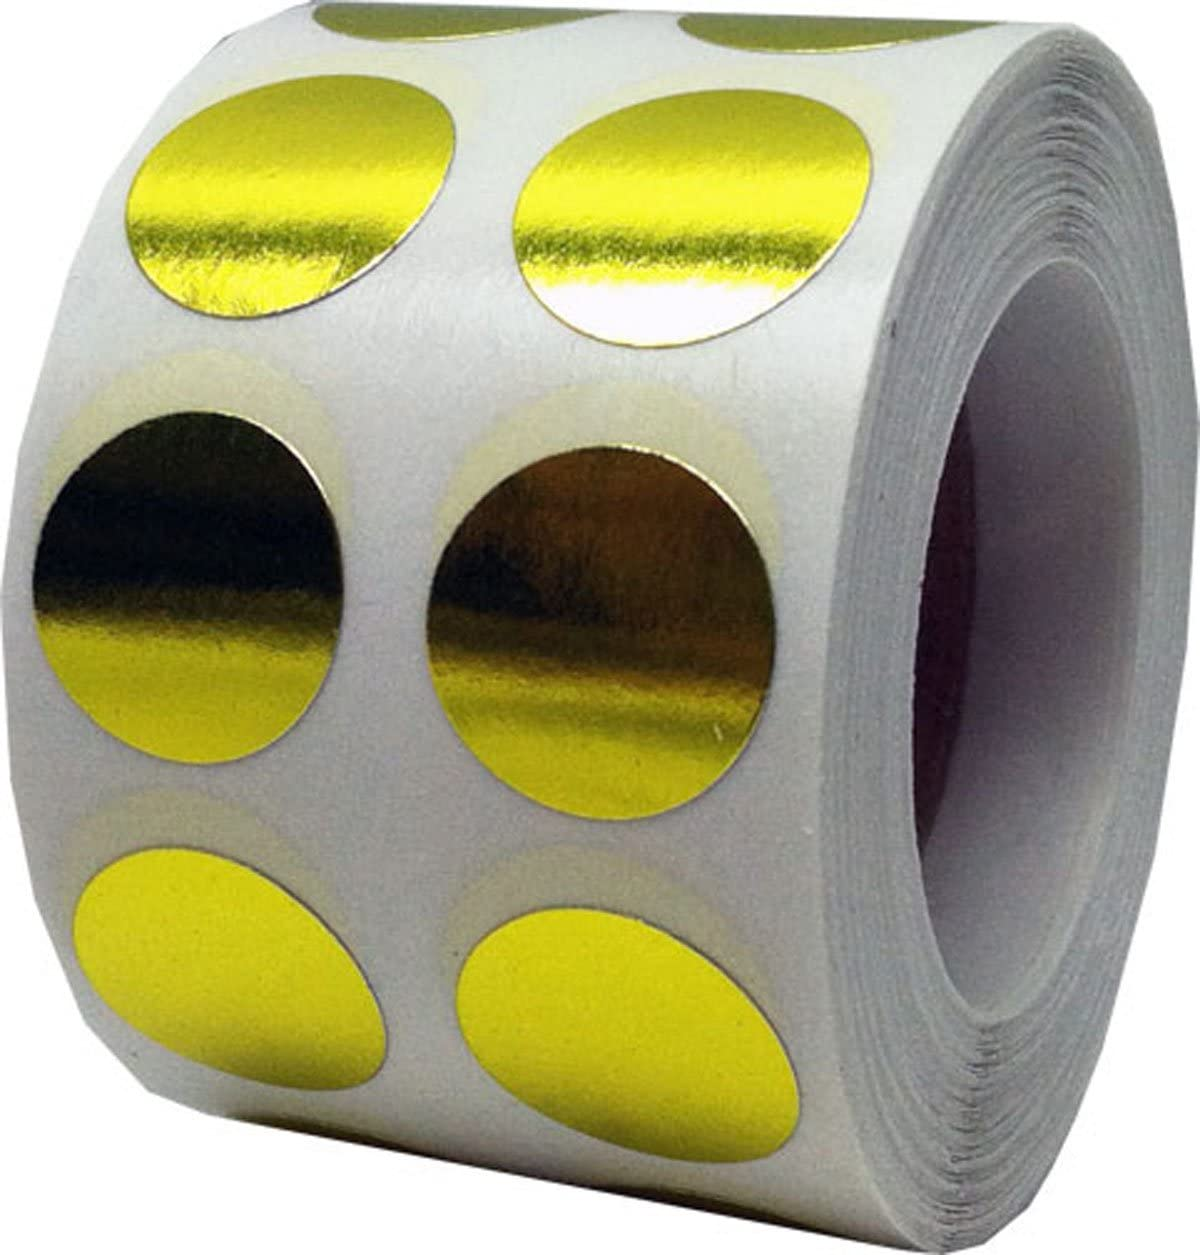 Metallic Gold Color Coding Labels for Organizing Inventory 0.50 Inch Round Circle Dots 1,000 Total Adhesive Stickers On A Roll